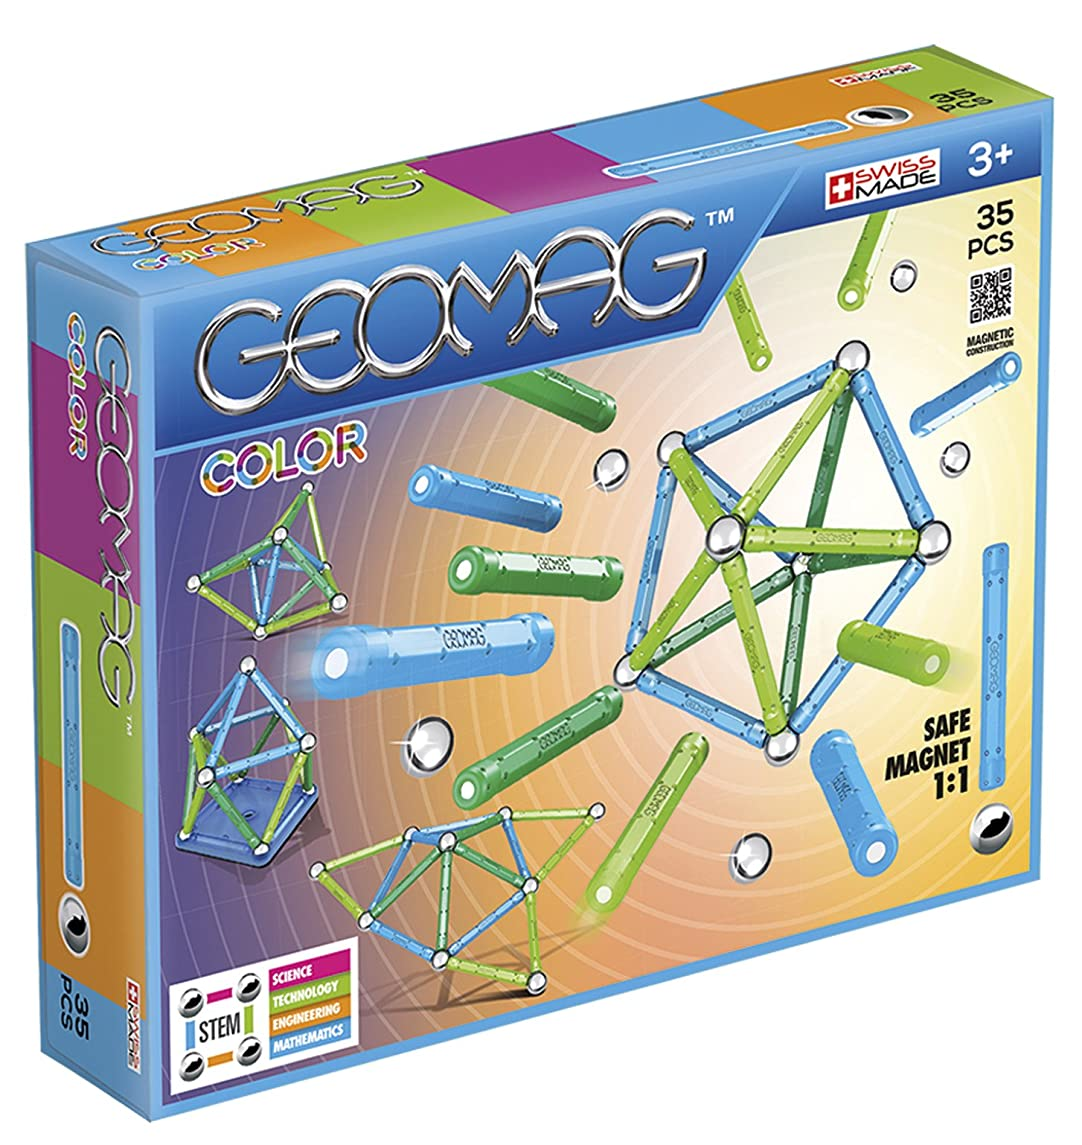 Geomag - COLOR - 35-Piece Magnetic Building Set, Certified STEM Construction Toy, Safe for Ages 3 and Up